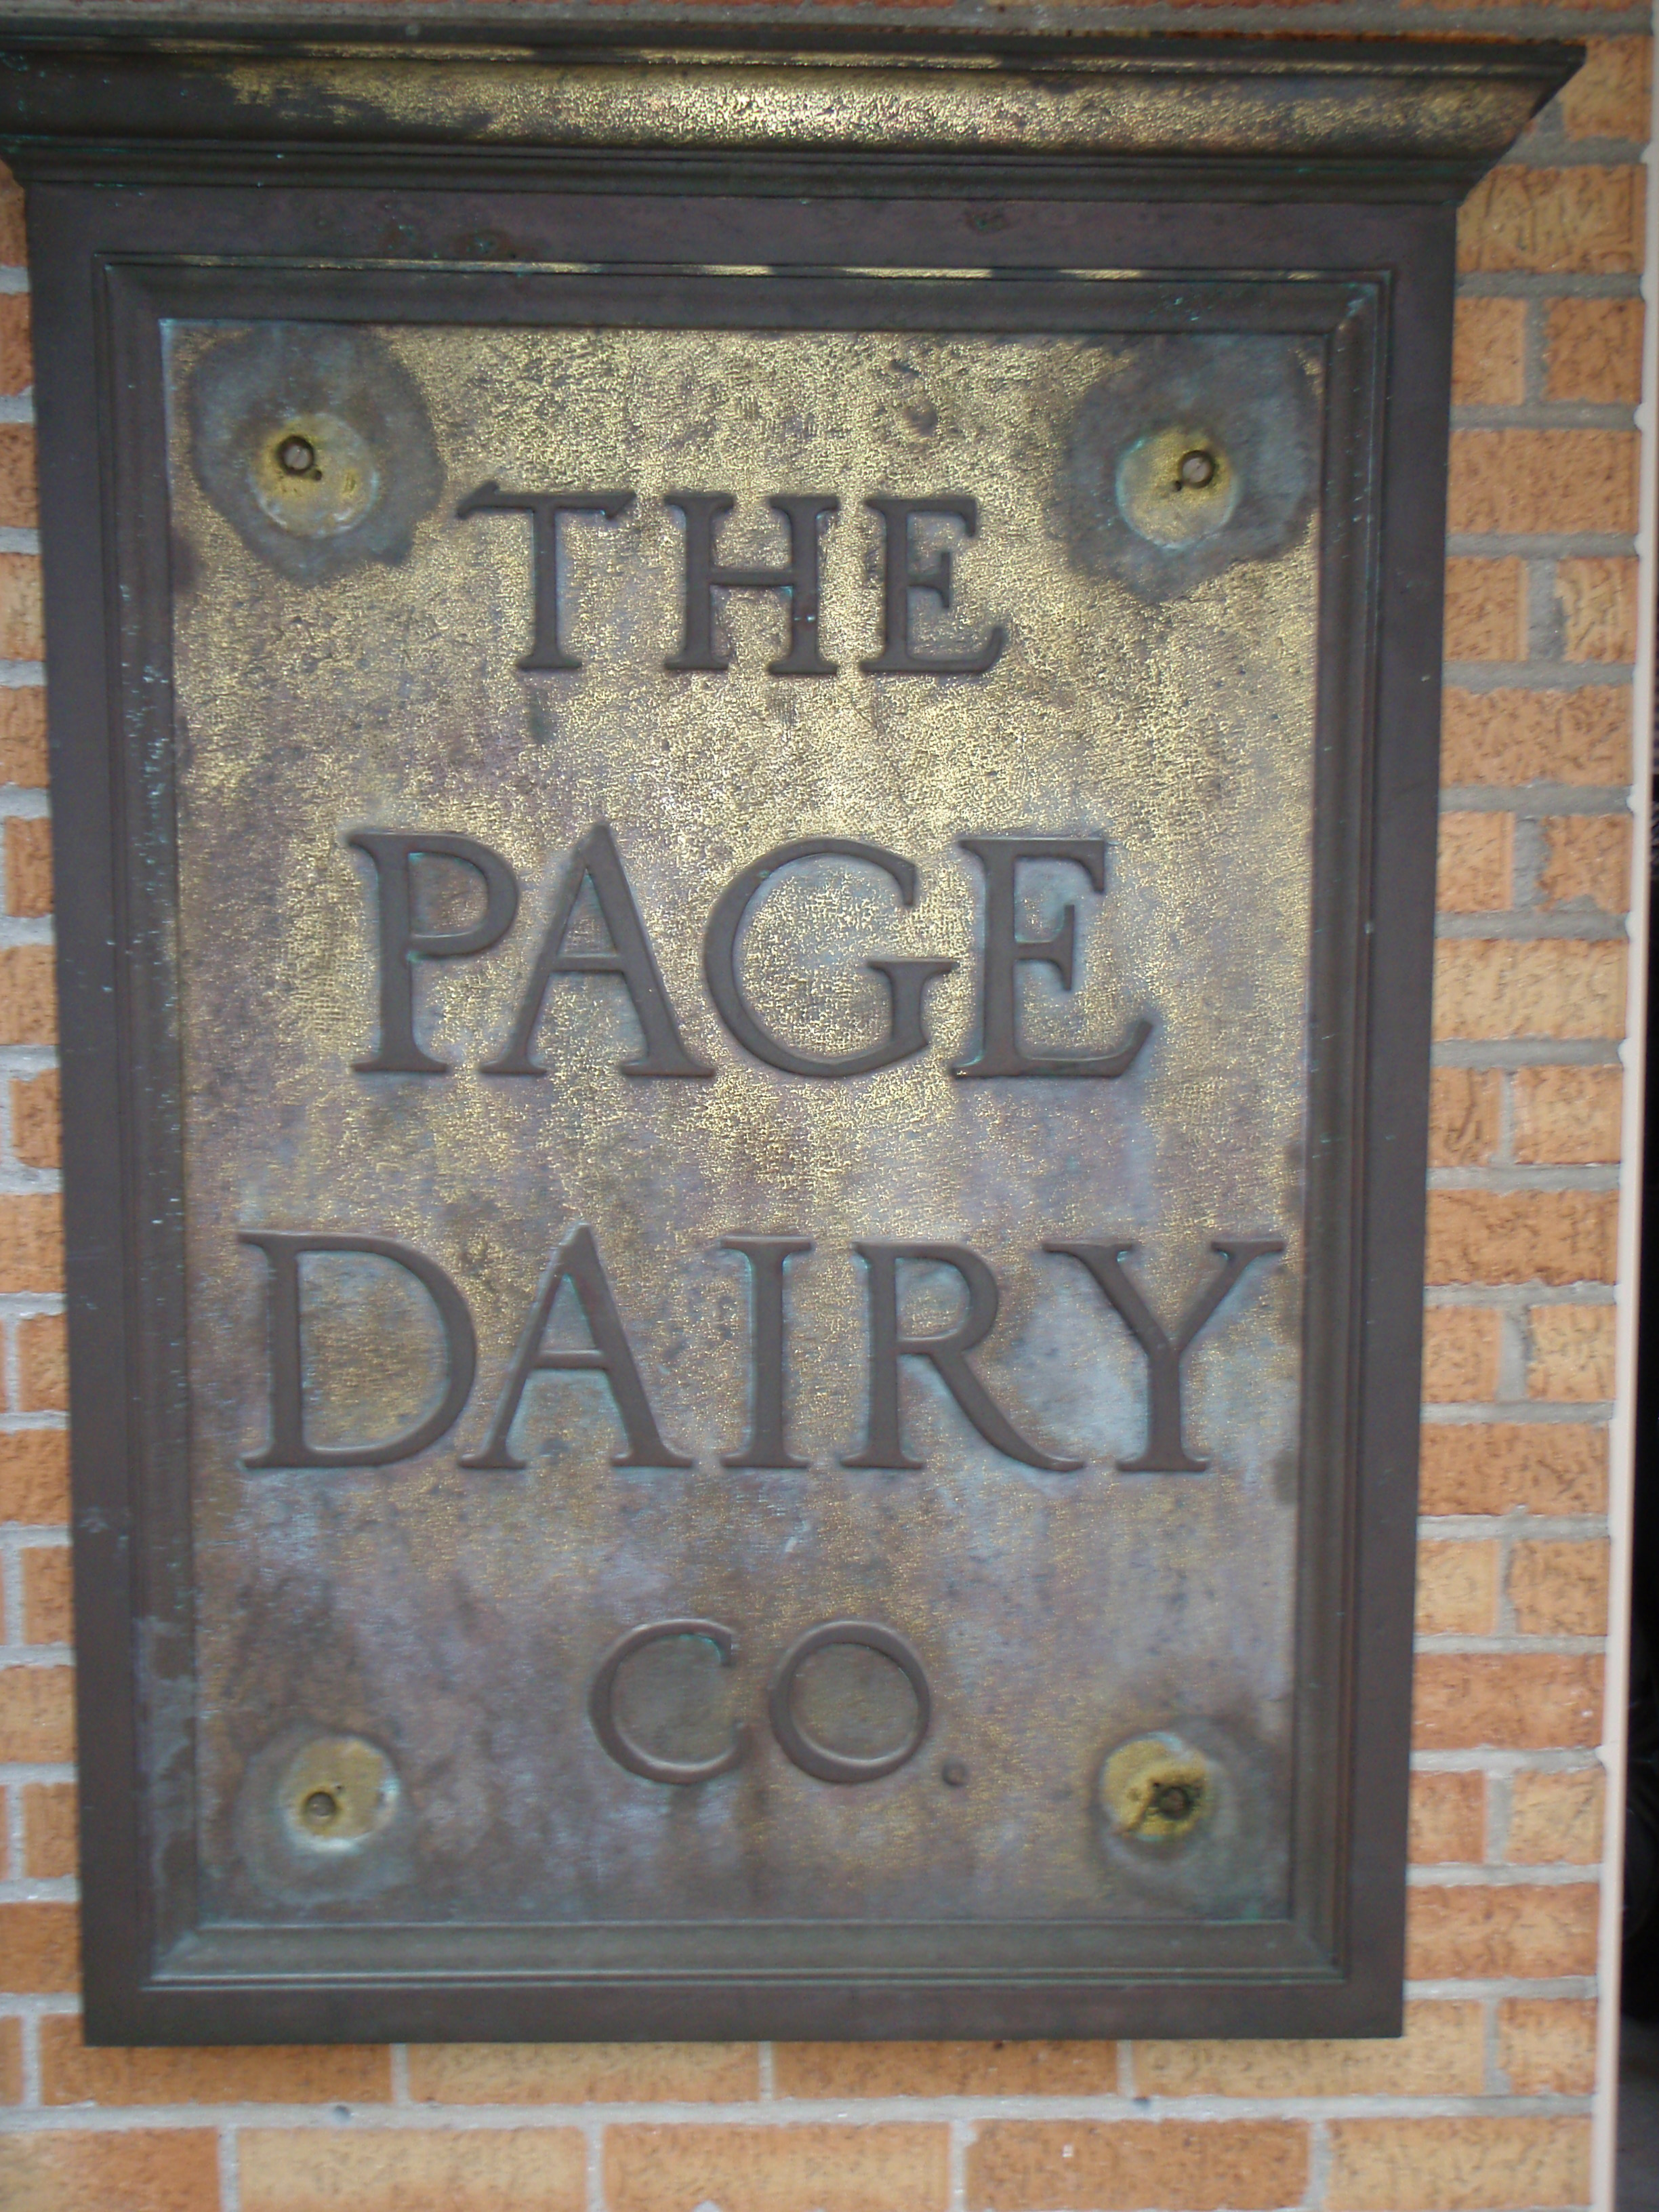 Page Dairy Company Large Brass sign